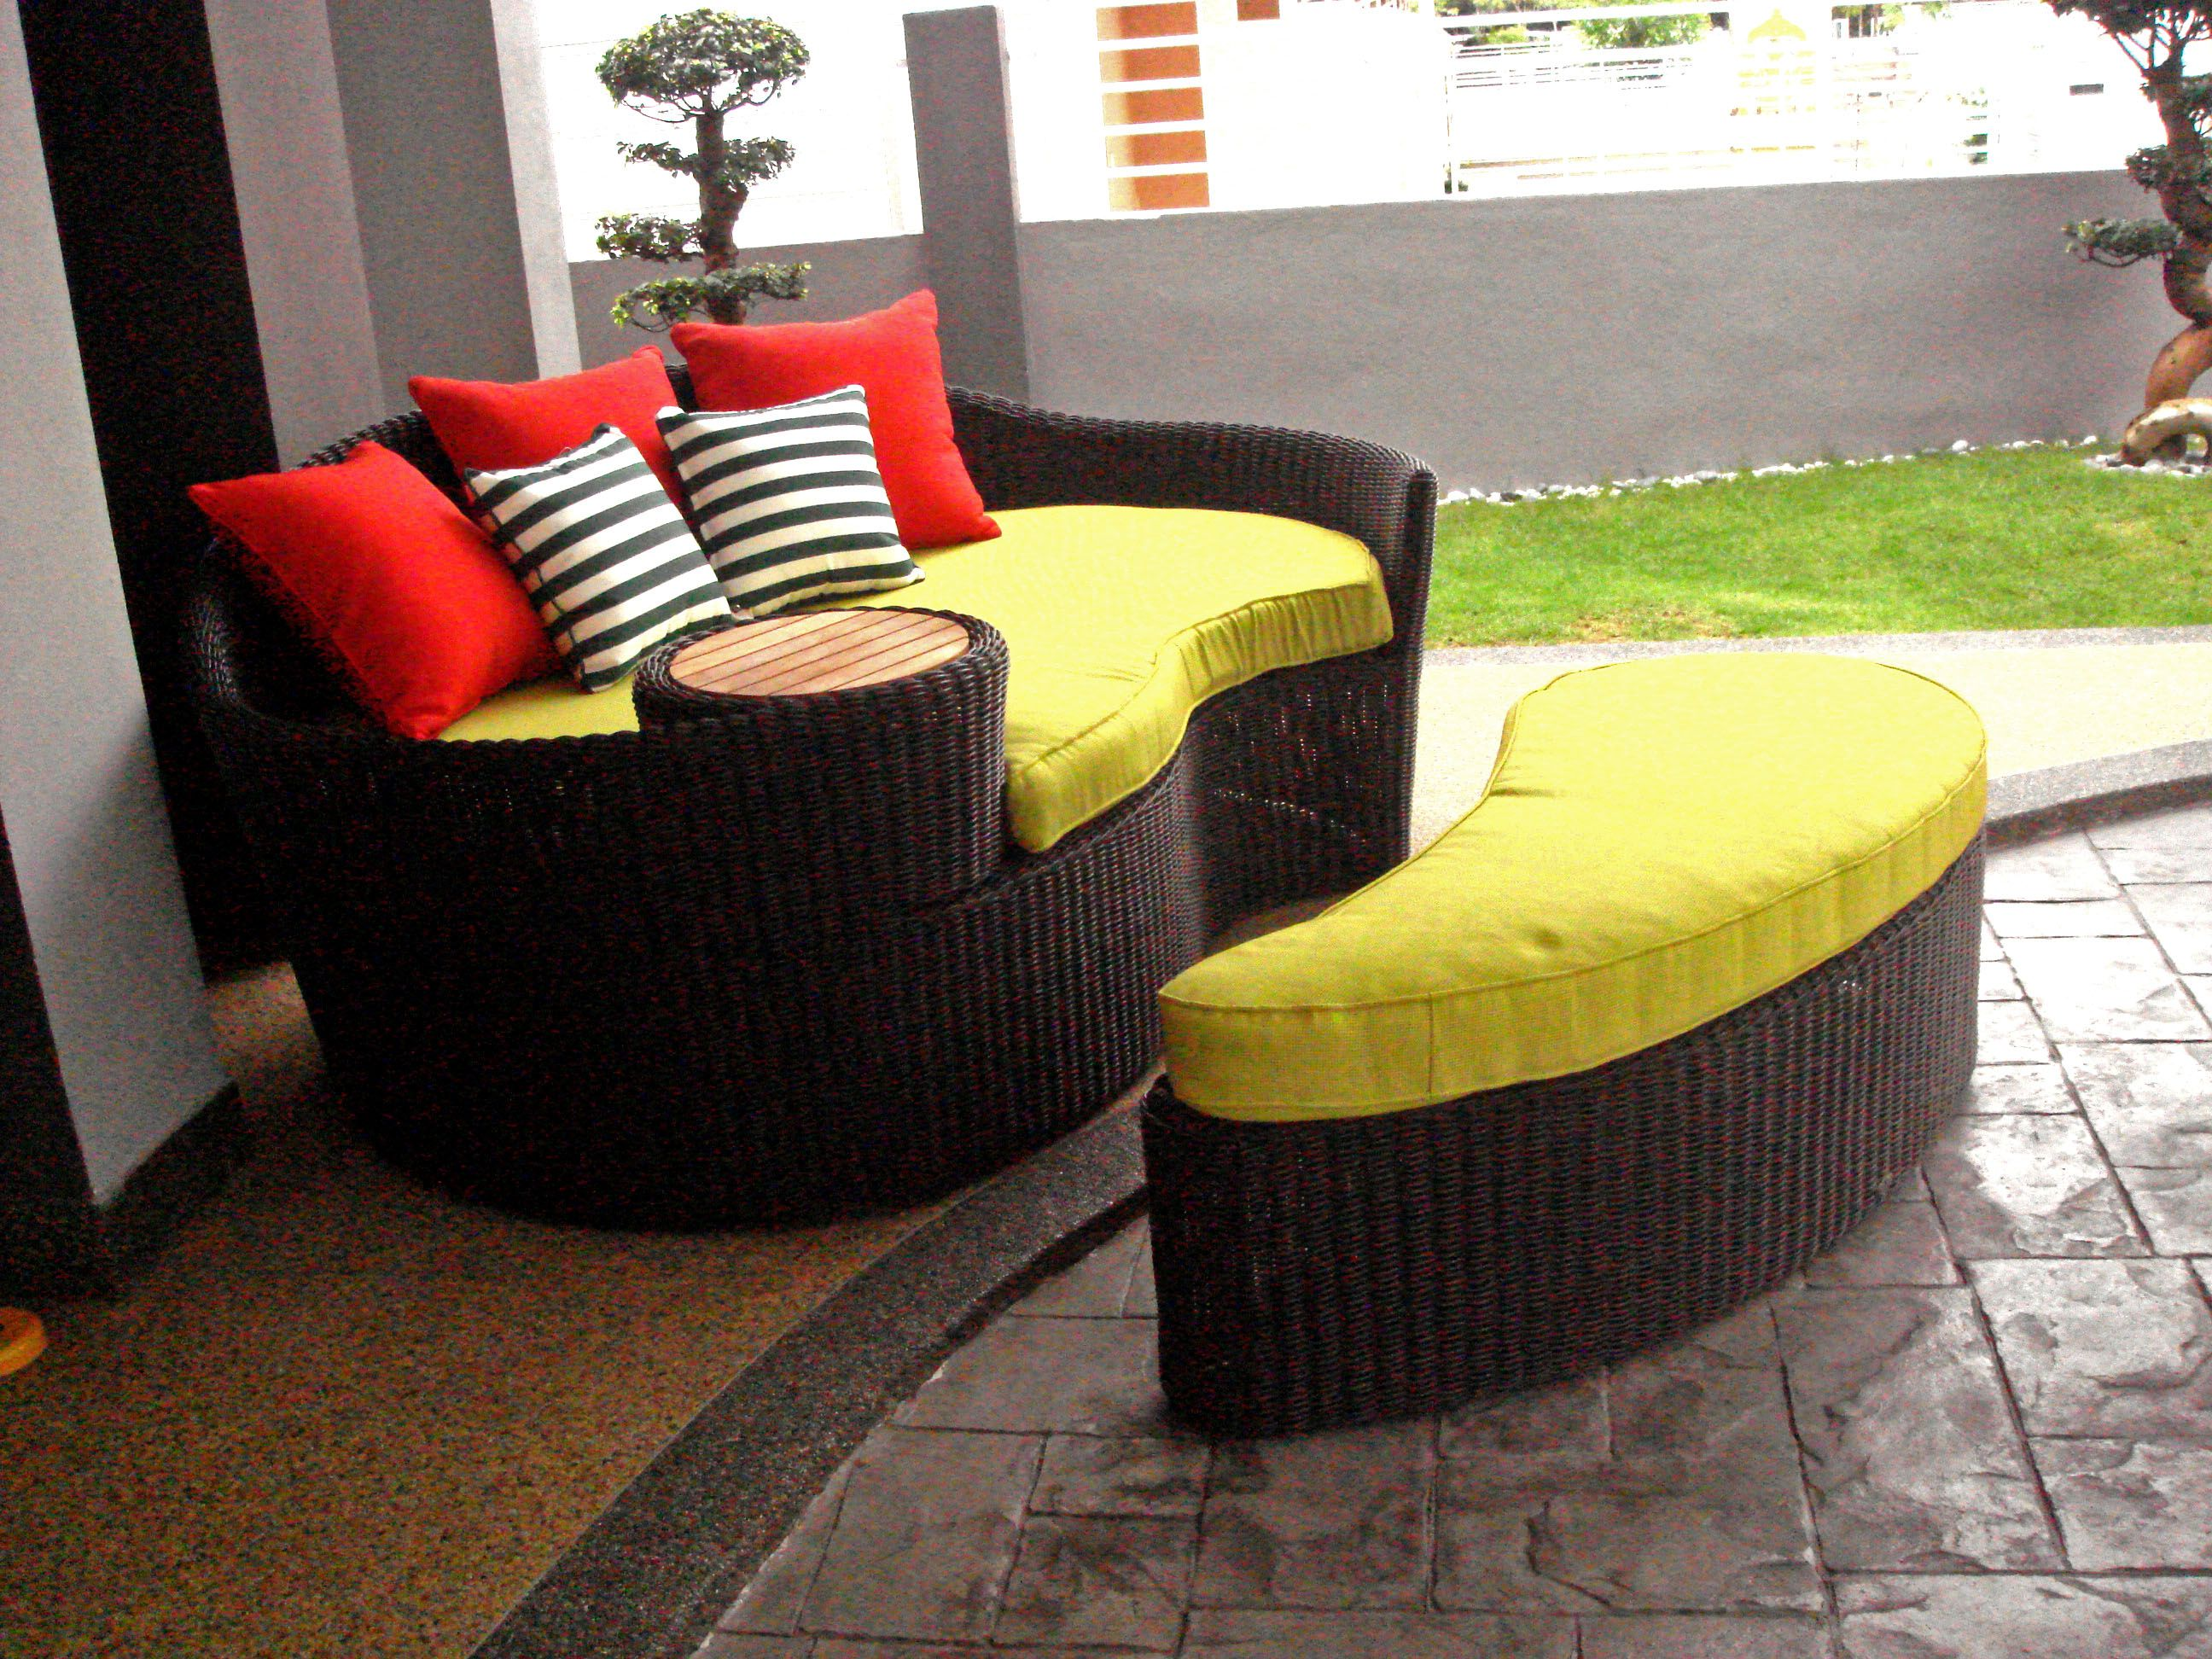 Outdoor Lounge Furniture Gumtree Perth - Outdoor Ideas